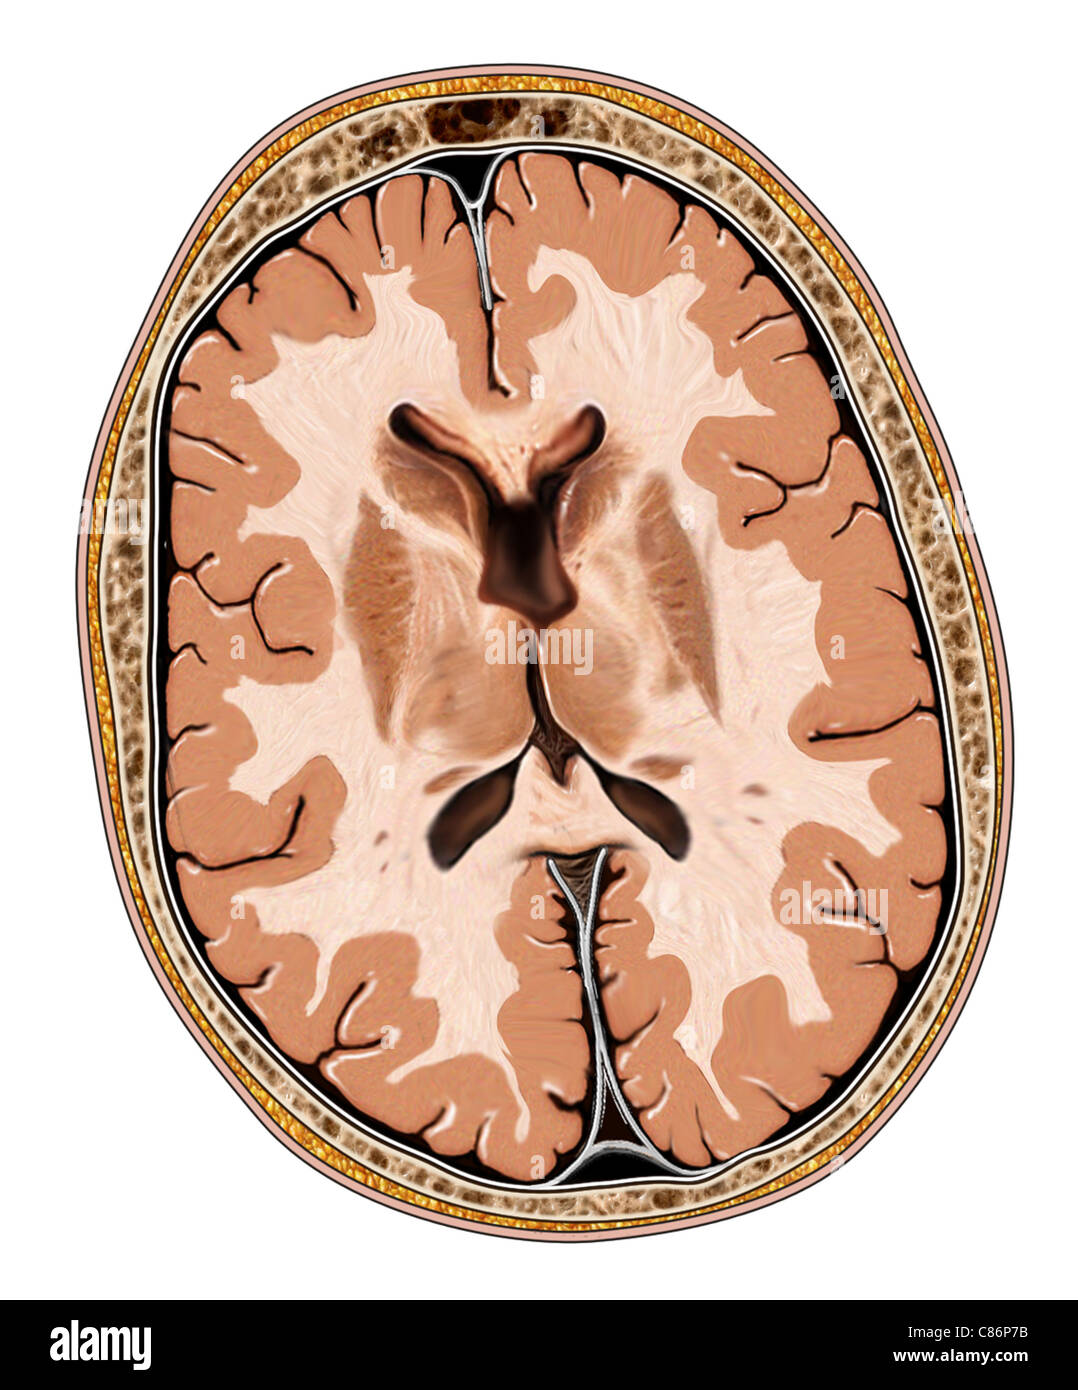 This medical illustration features an axial view of the brain. - Stock Image